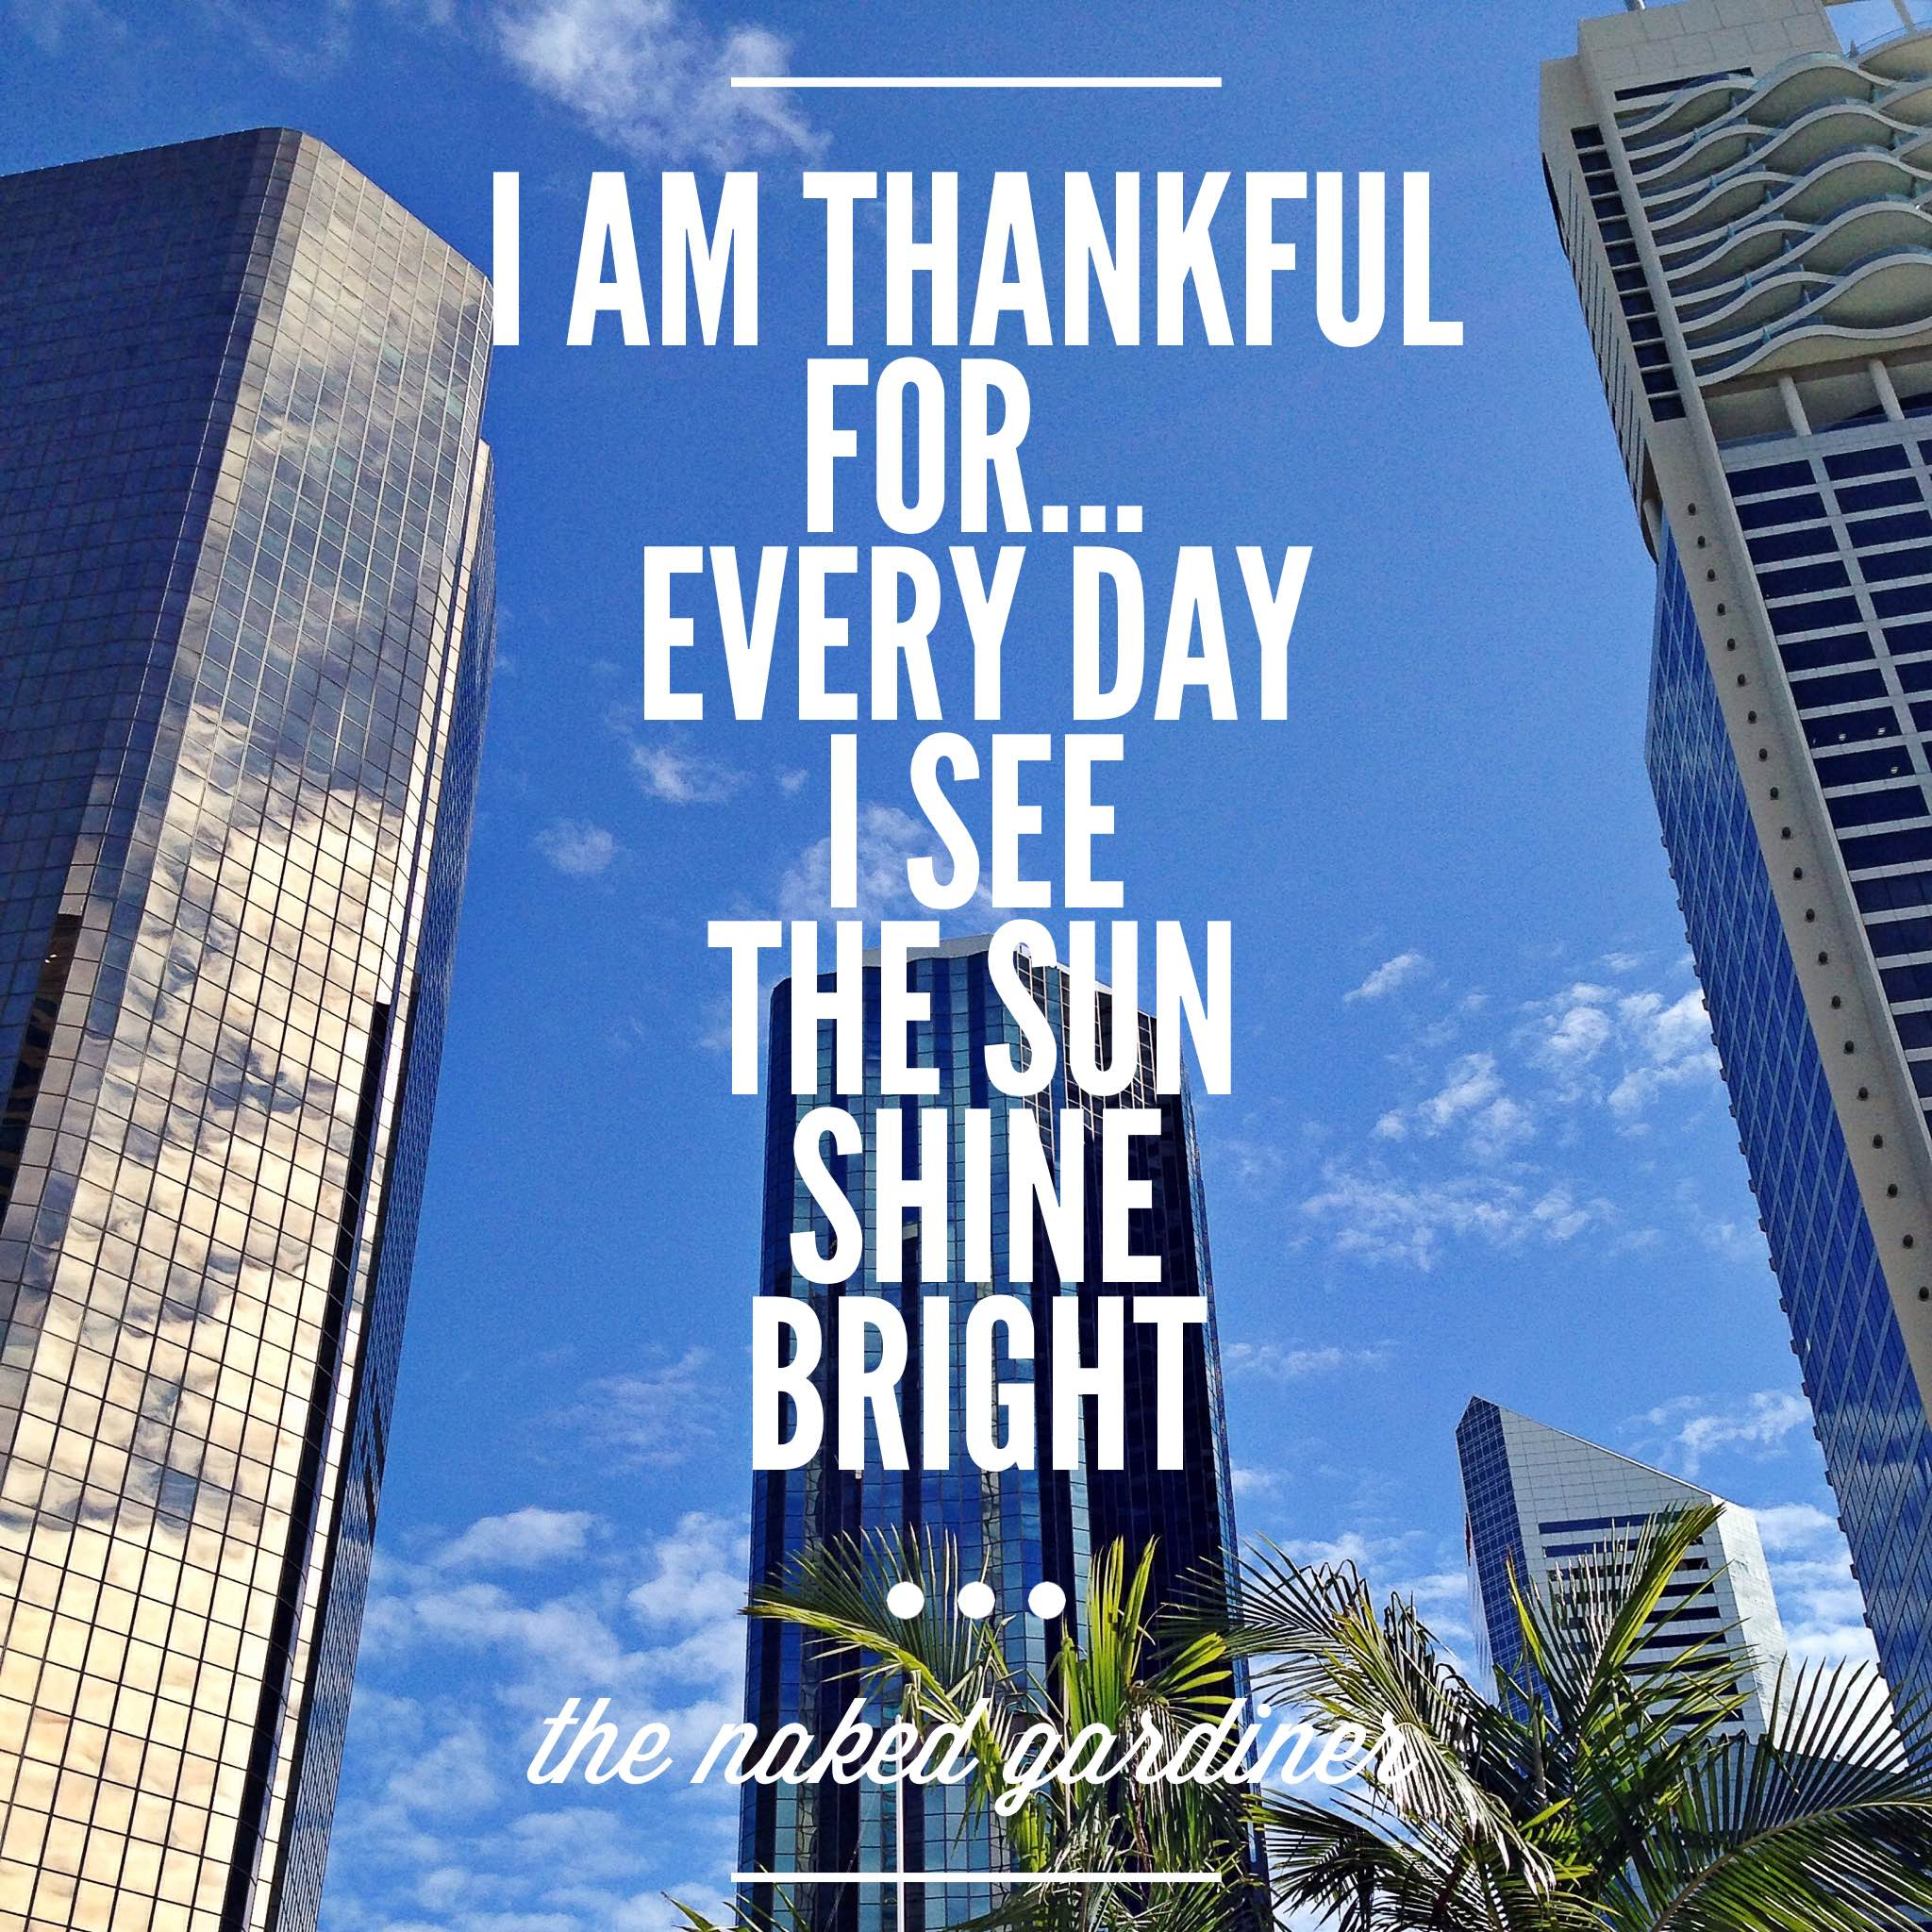 thankful-thursday-every-day-sun-shine-bright-thenakedgadiner